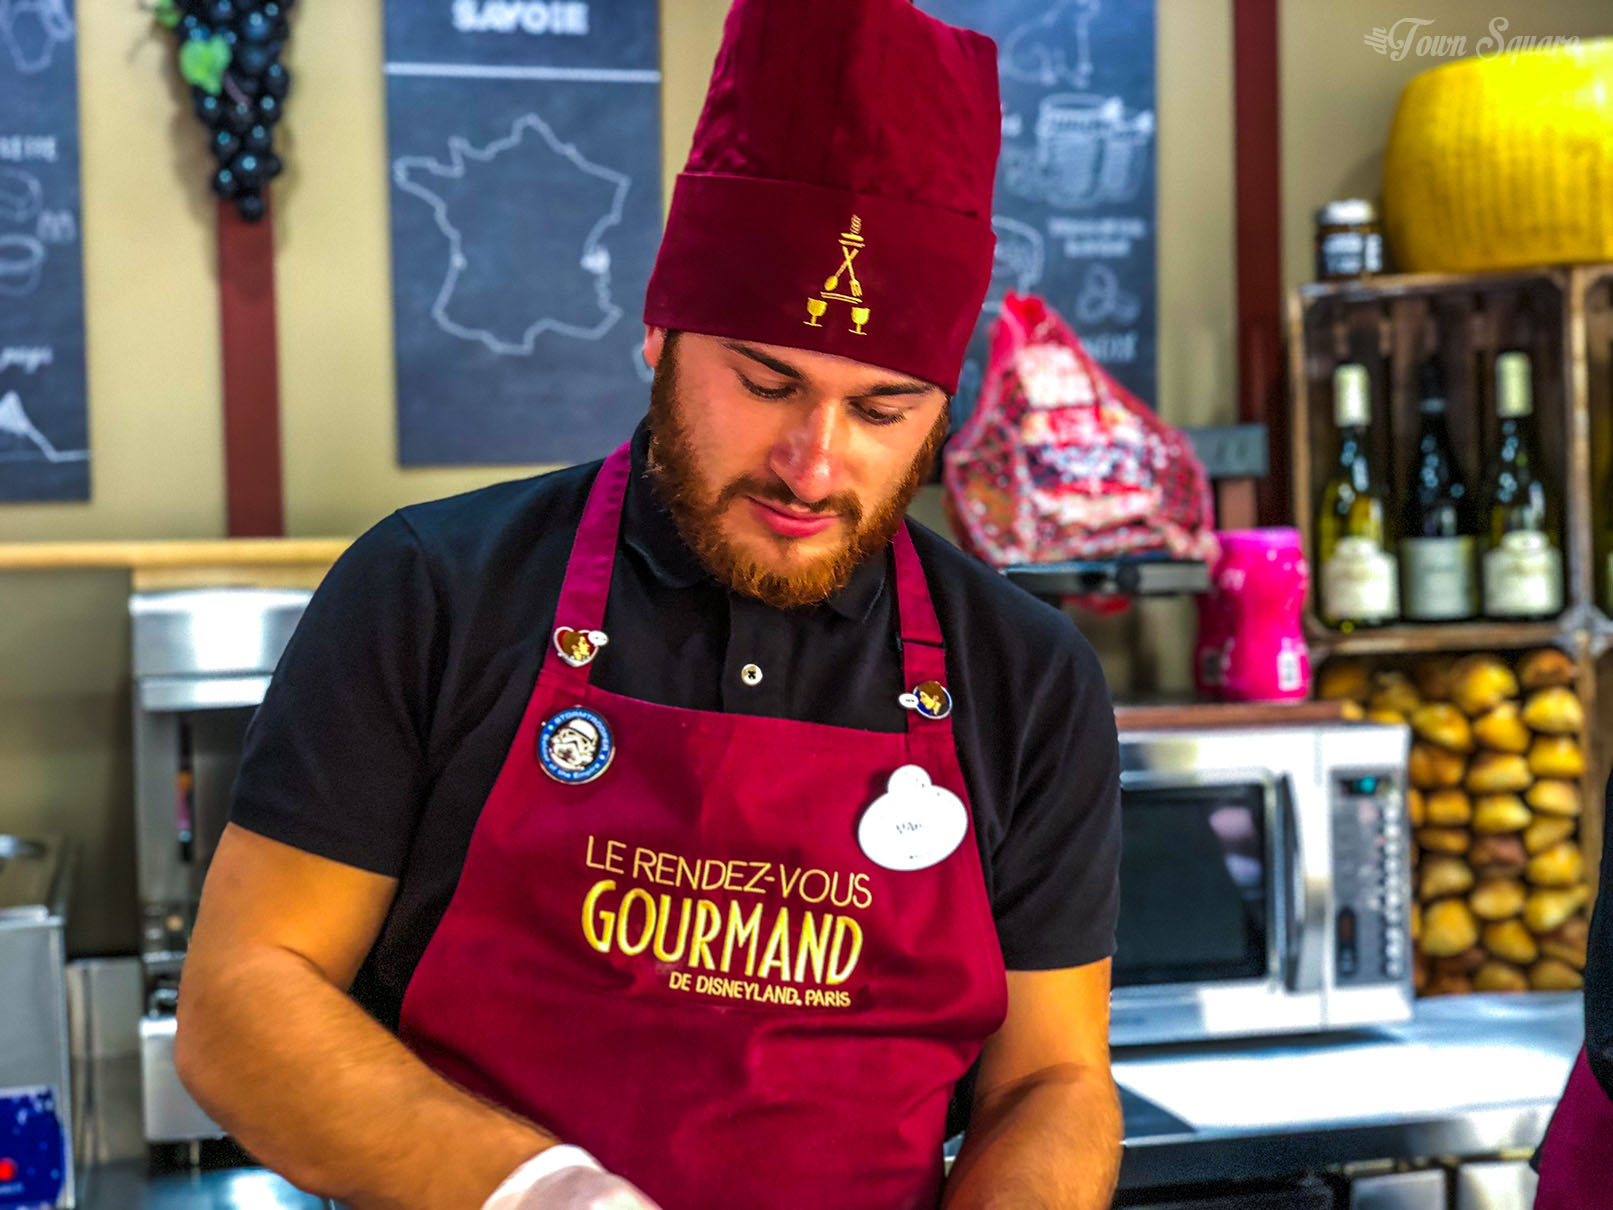 A Cast Member working at the Rendez-Vous Gourmand 2018 in Disneyland Paris